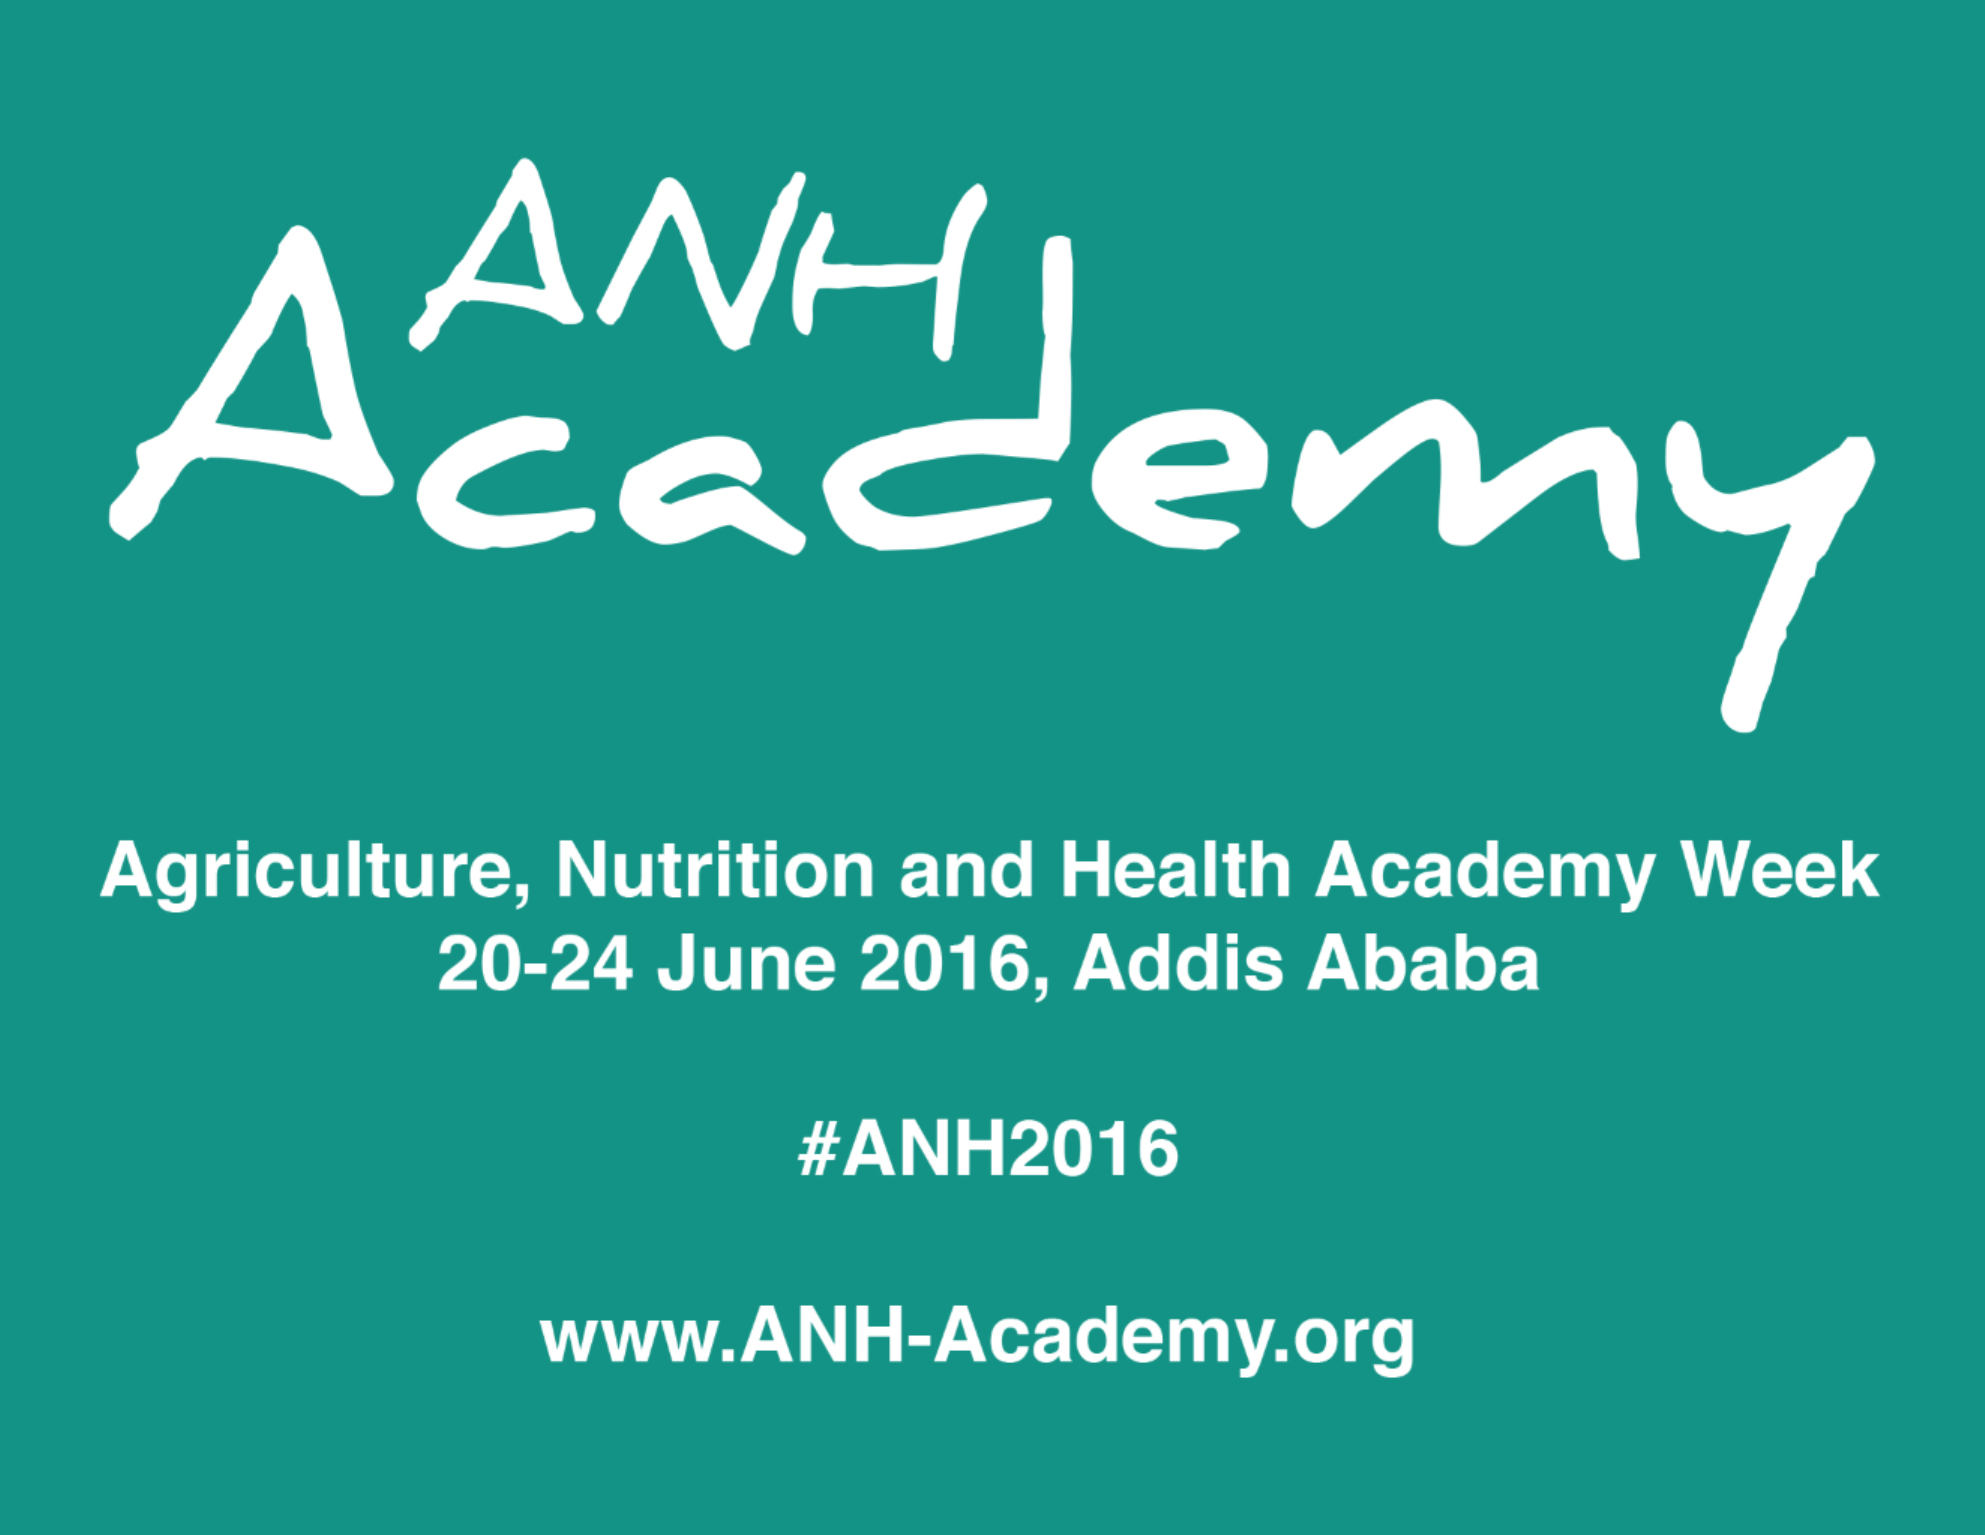 aeb493e0a5 First annual ANH Academy Week coming up - Agriculture for Nutrition ...